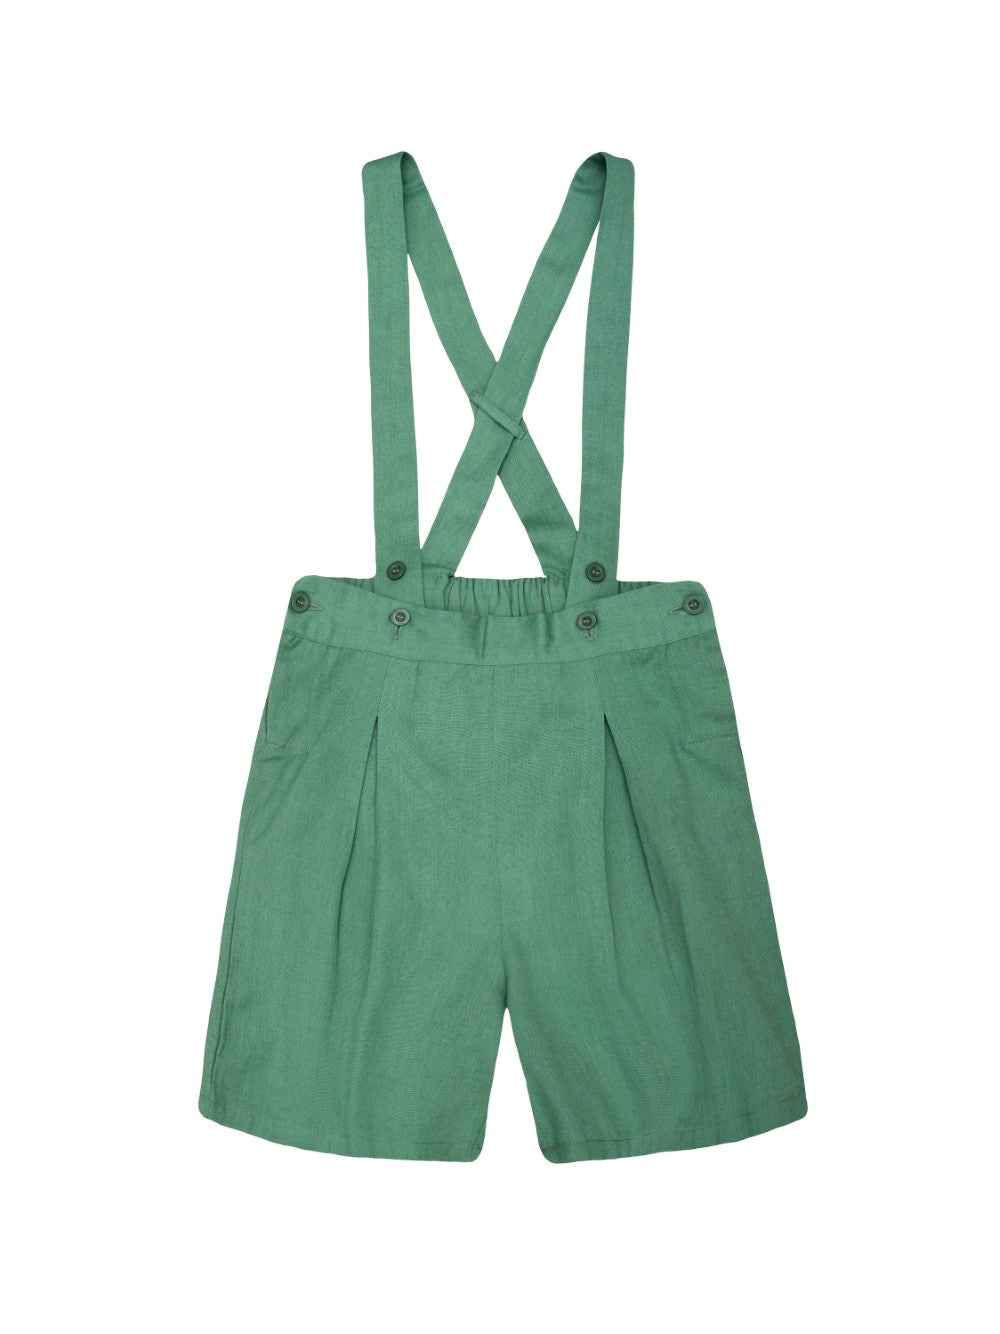 Green Suspender Shorts